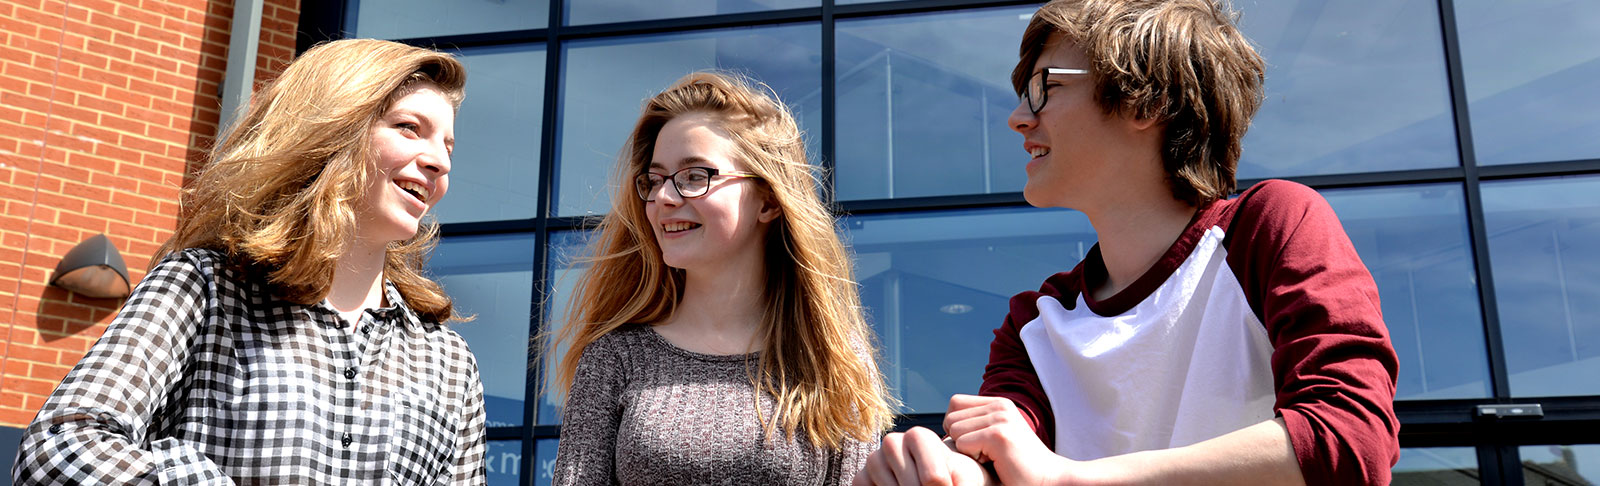 sixth form pupils